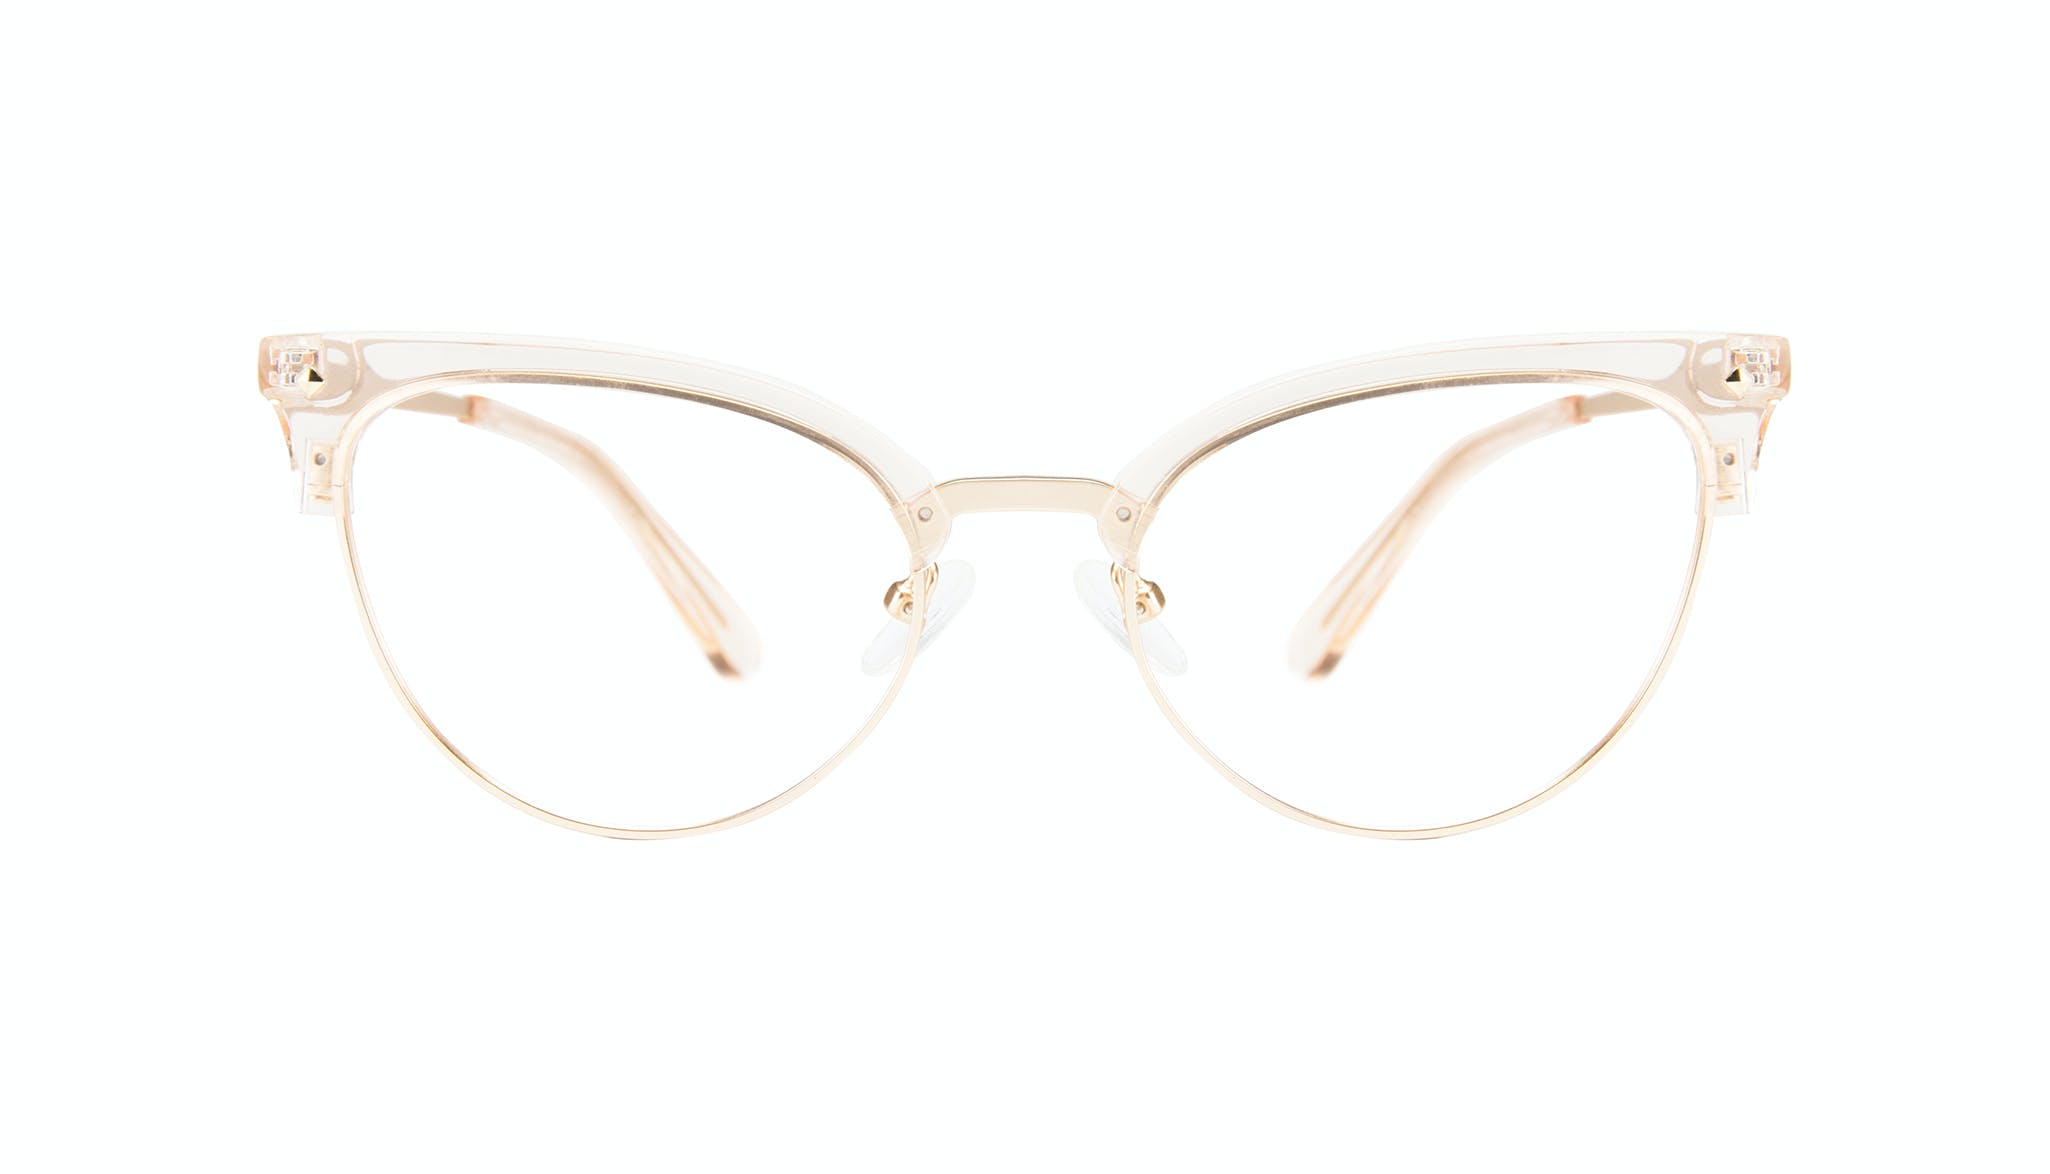 Affordable Fashion Glasses Cat Eye Daring Cateye Eyeglasses Women Moon Blond Front